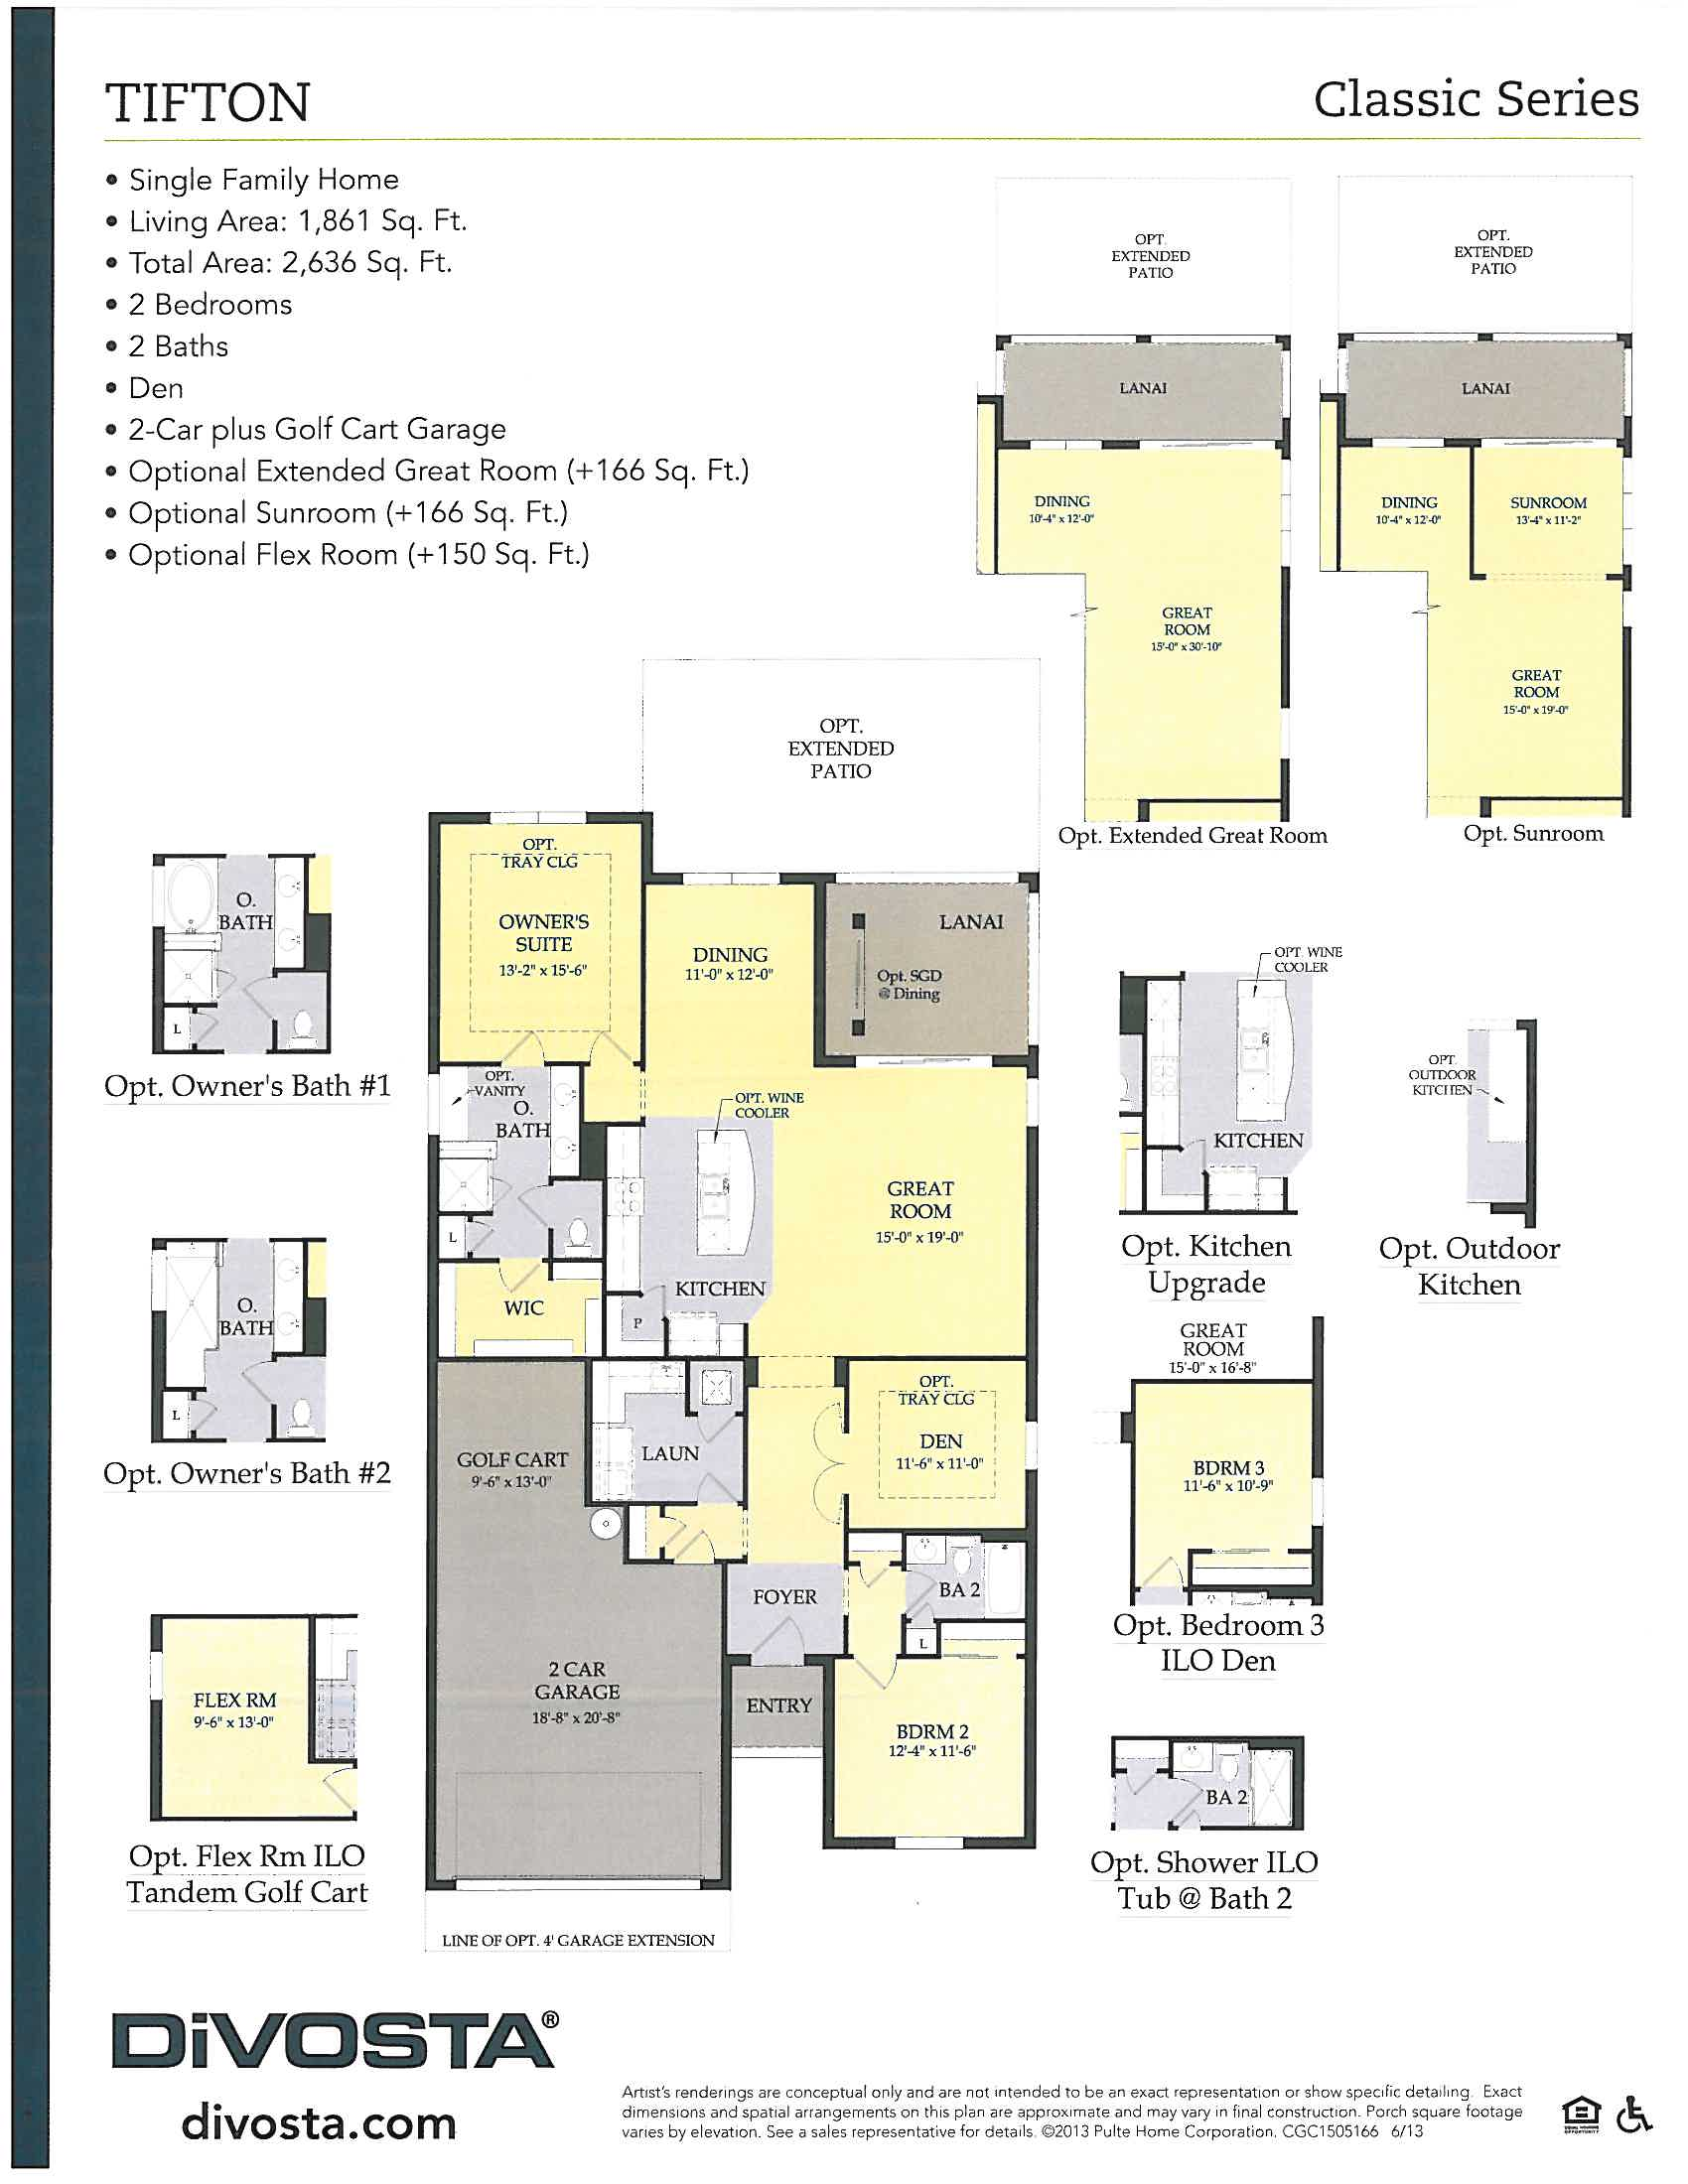 Tifton layout in Verona Walk in Naples, Florida.